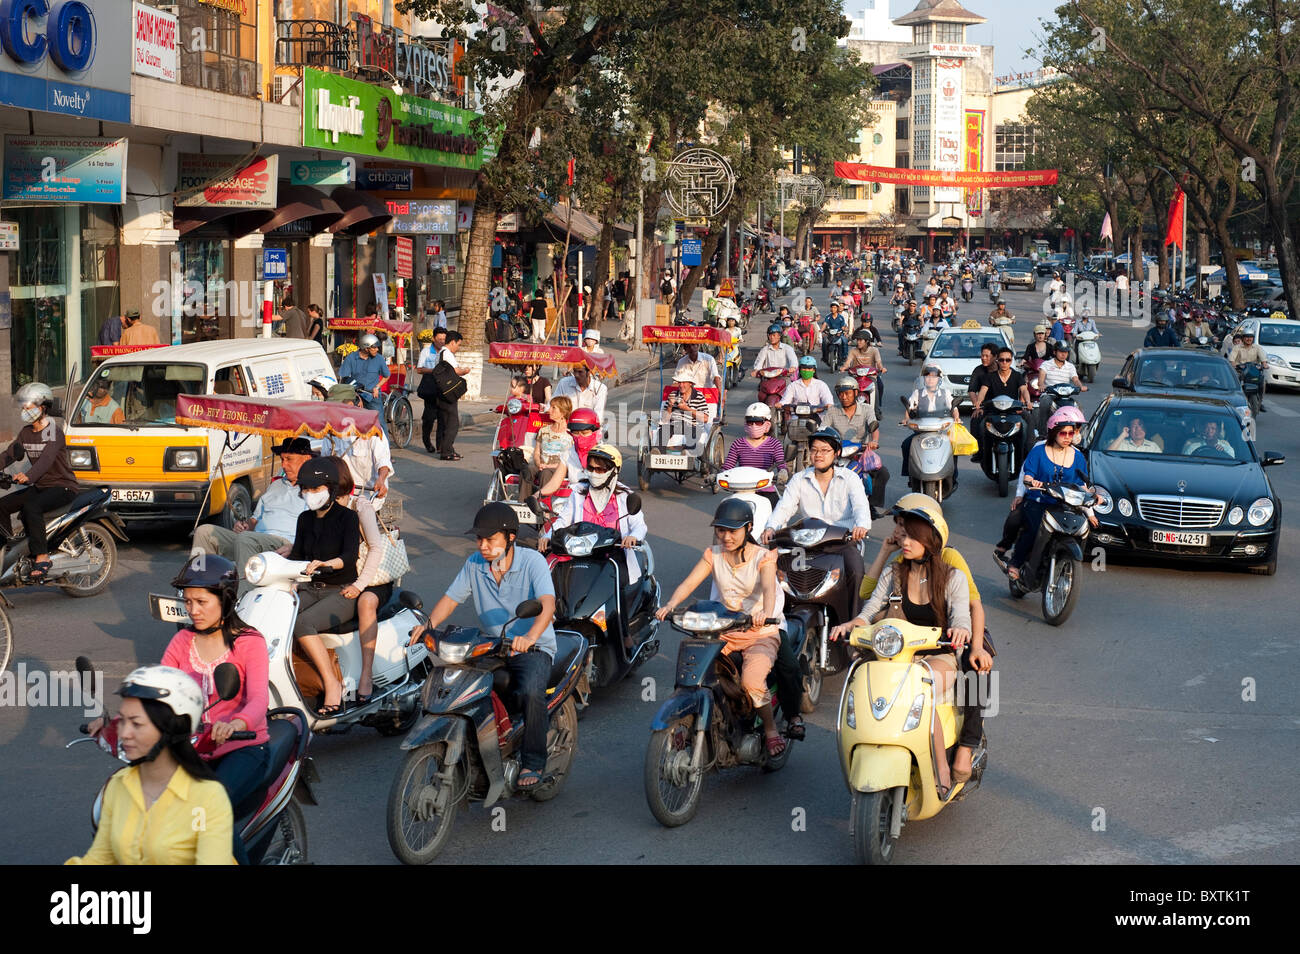 Motobikes fill the roads, Hanoi, Vietnam - Stock Image